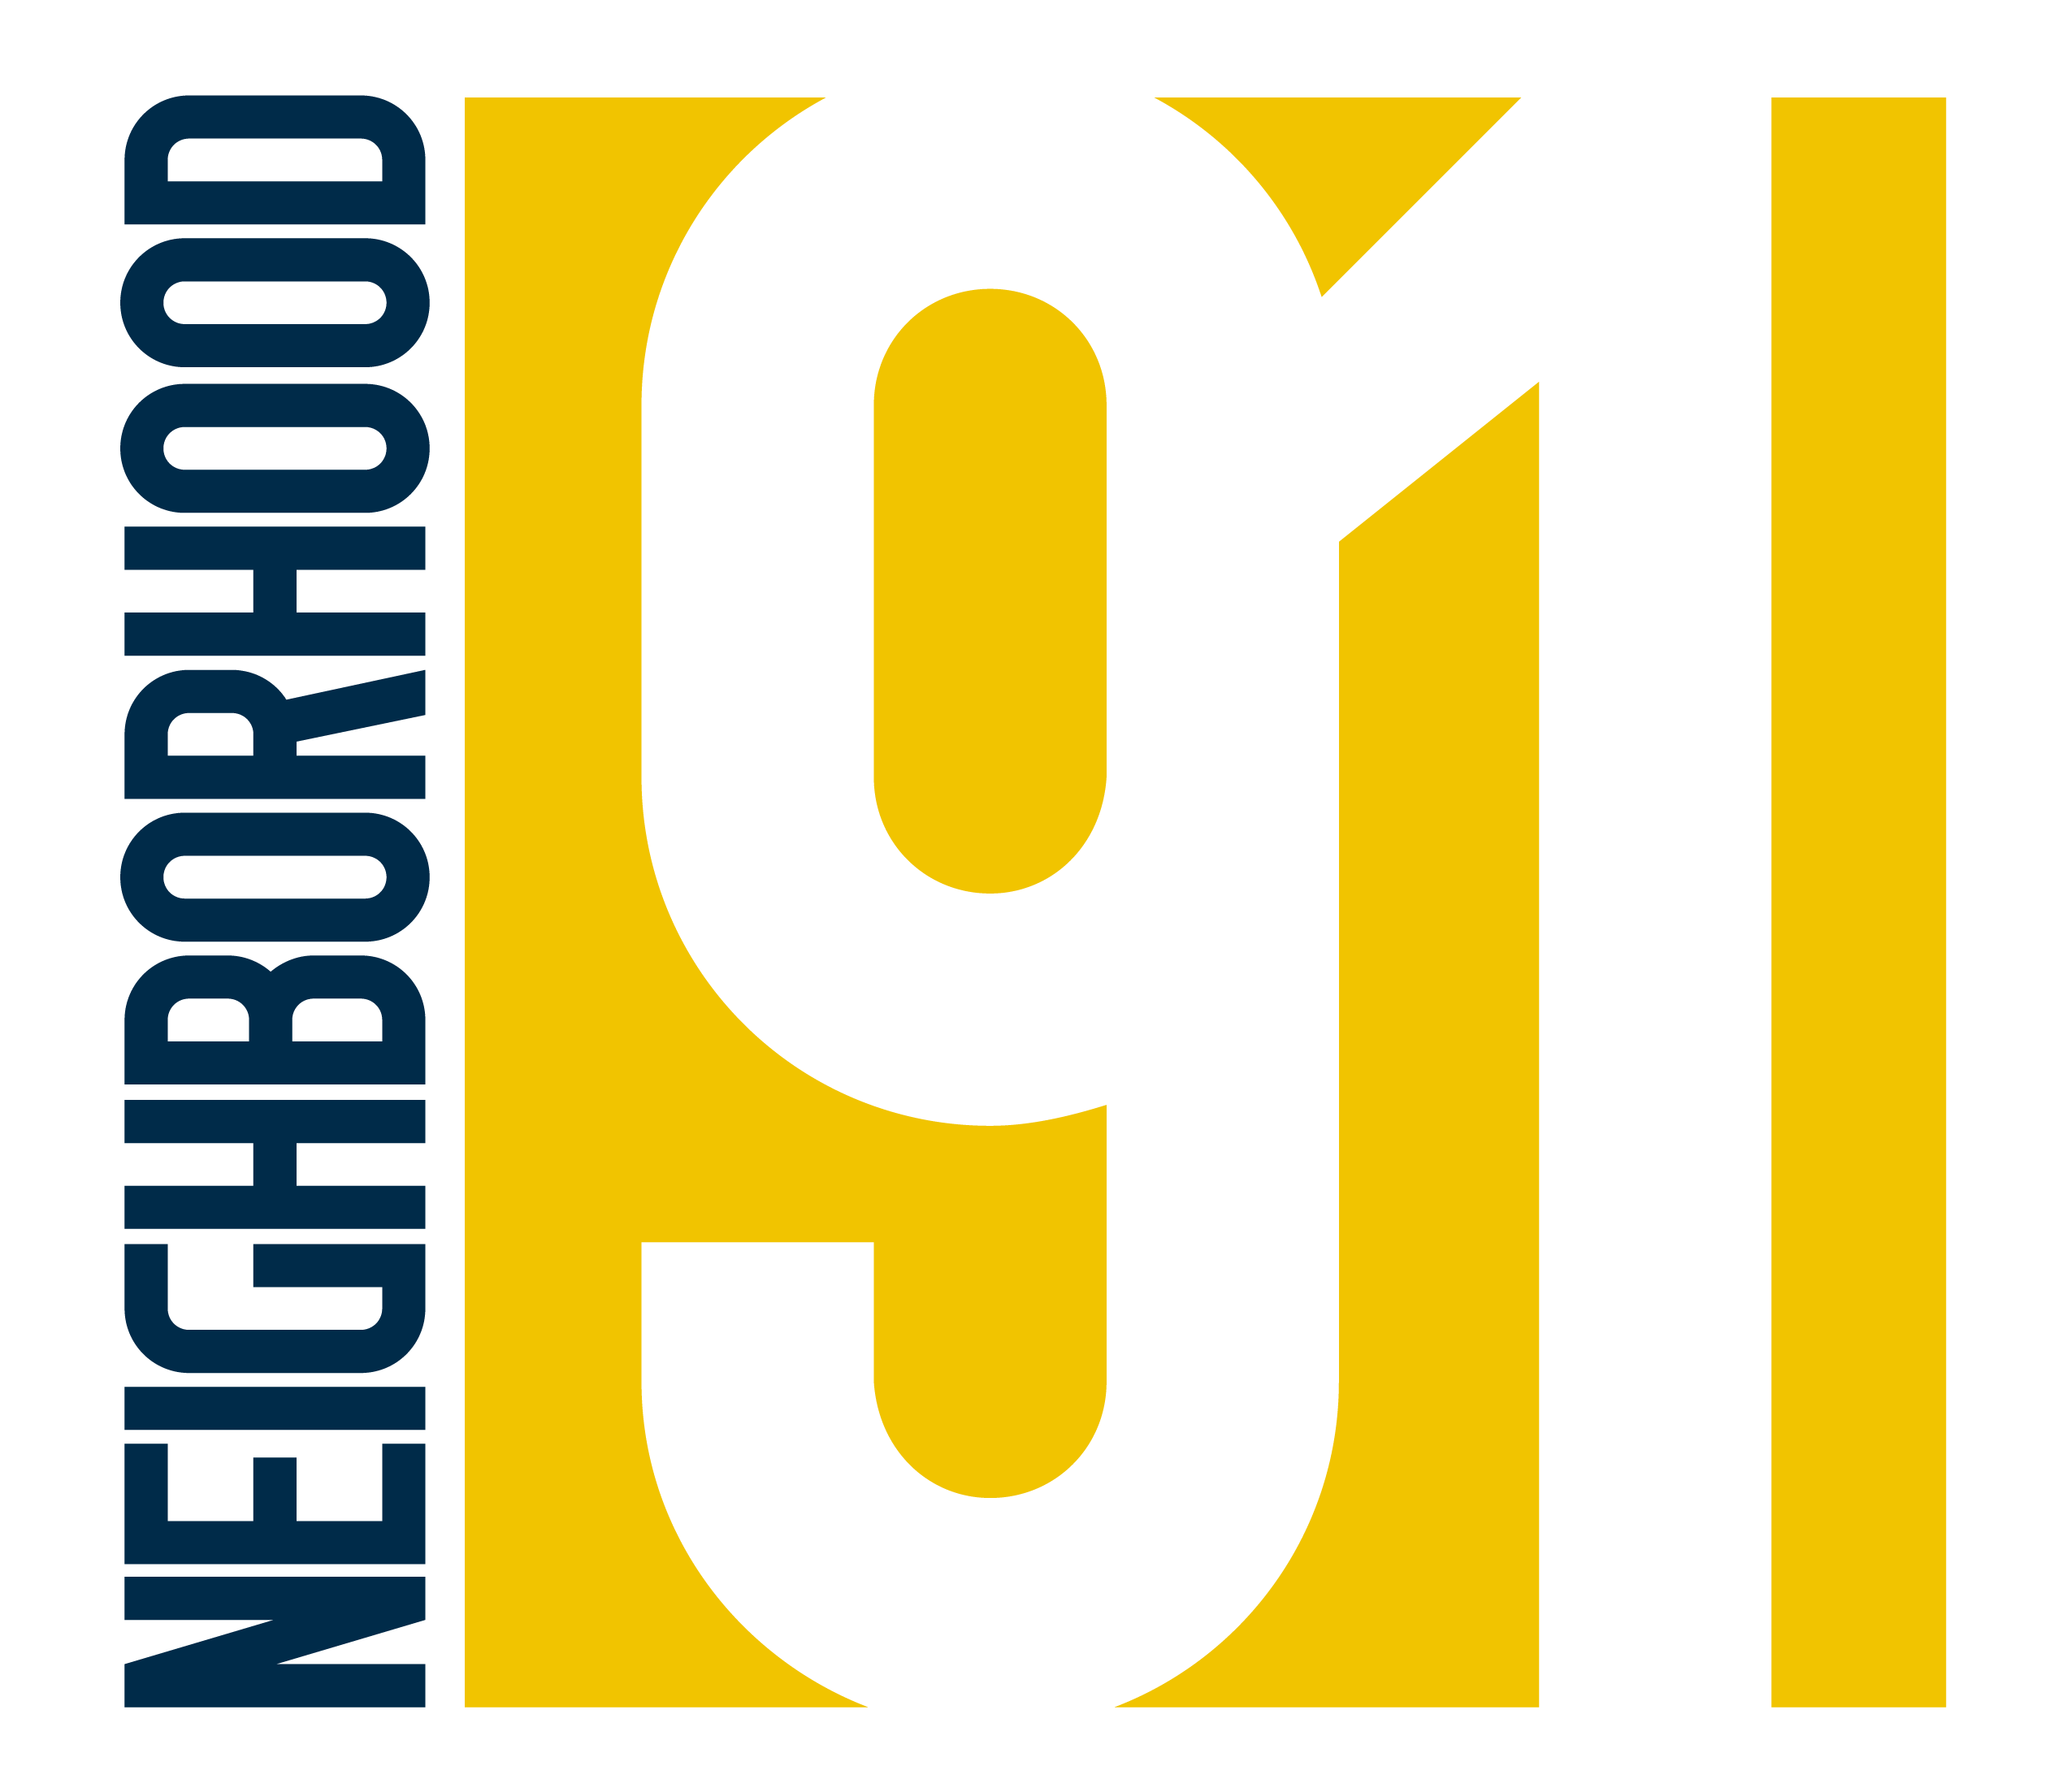 Neighborhood 91